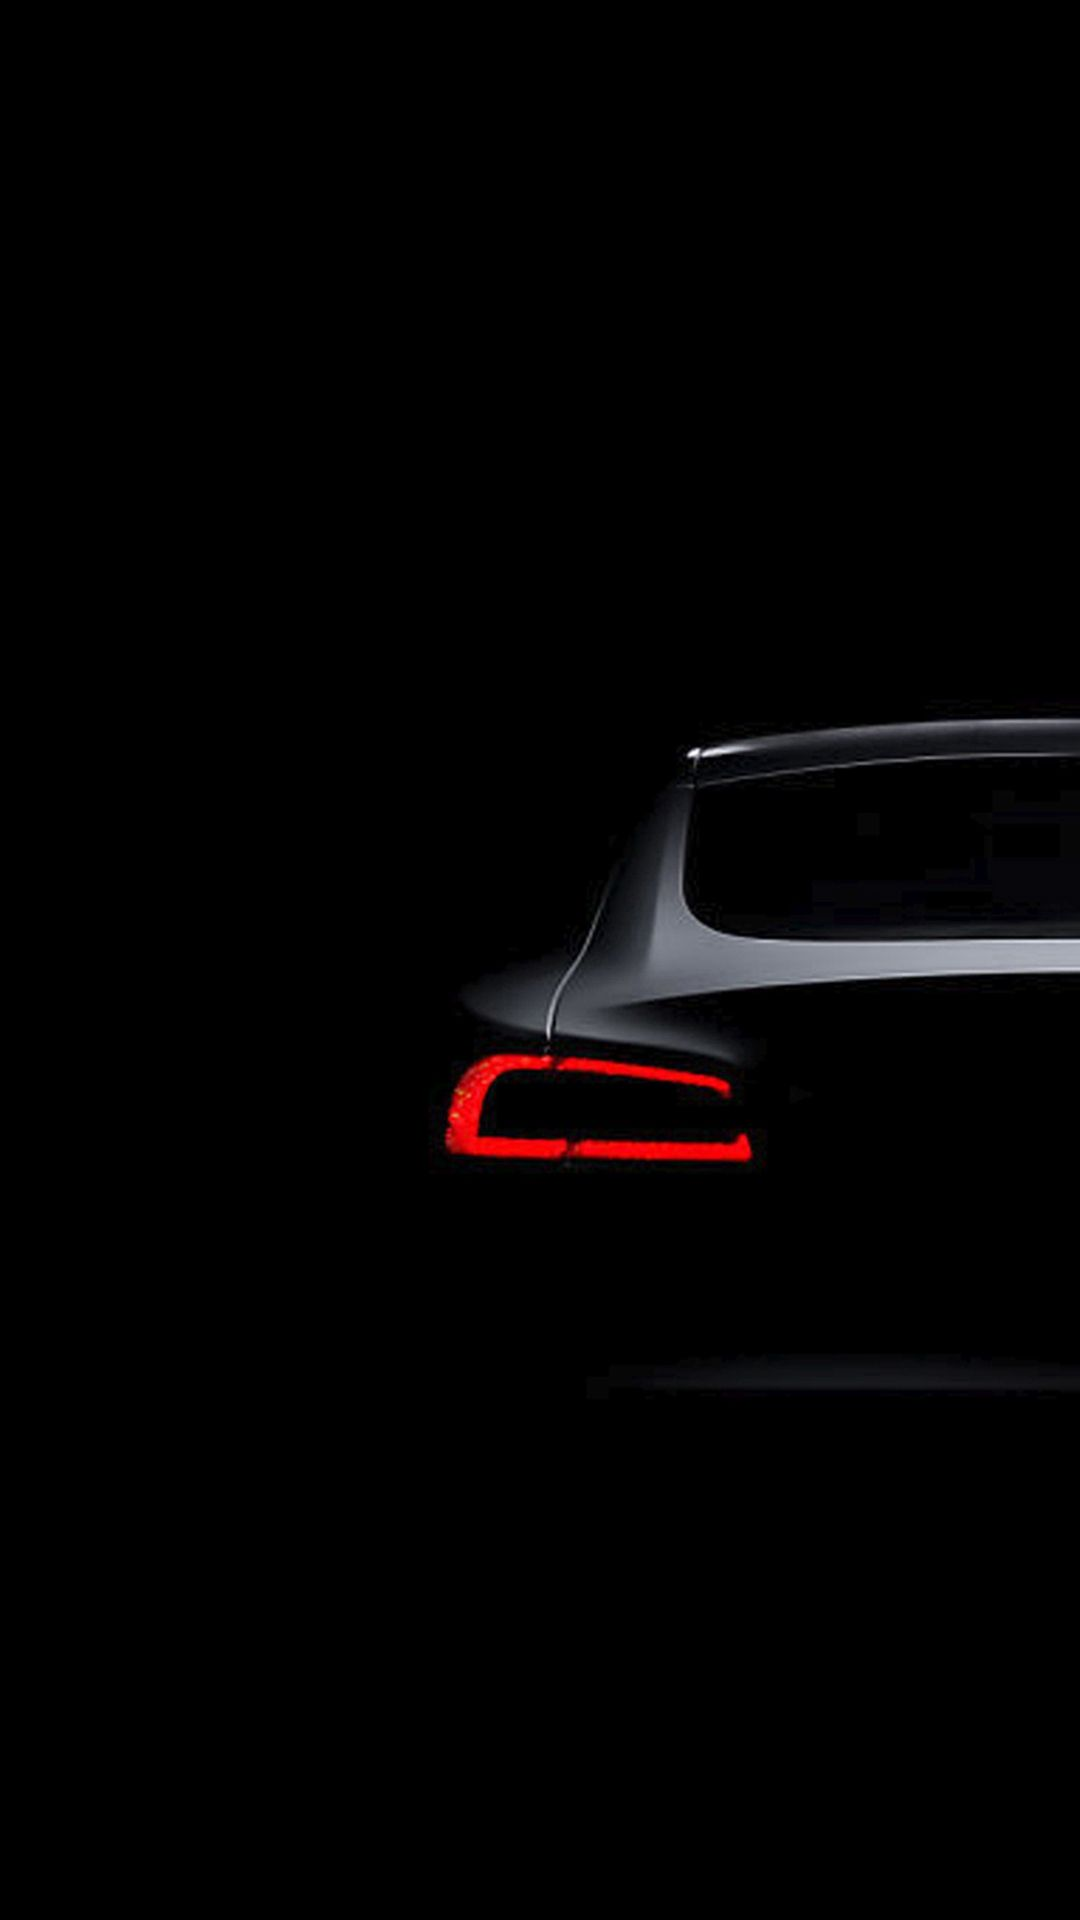 Tesla Model S Dark Brake Light #iPhone #6 #wallpaper